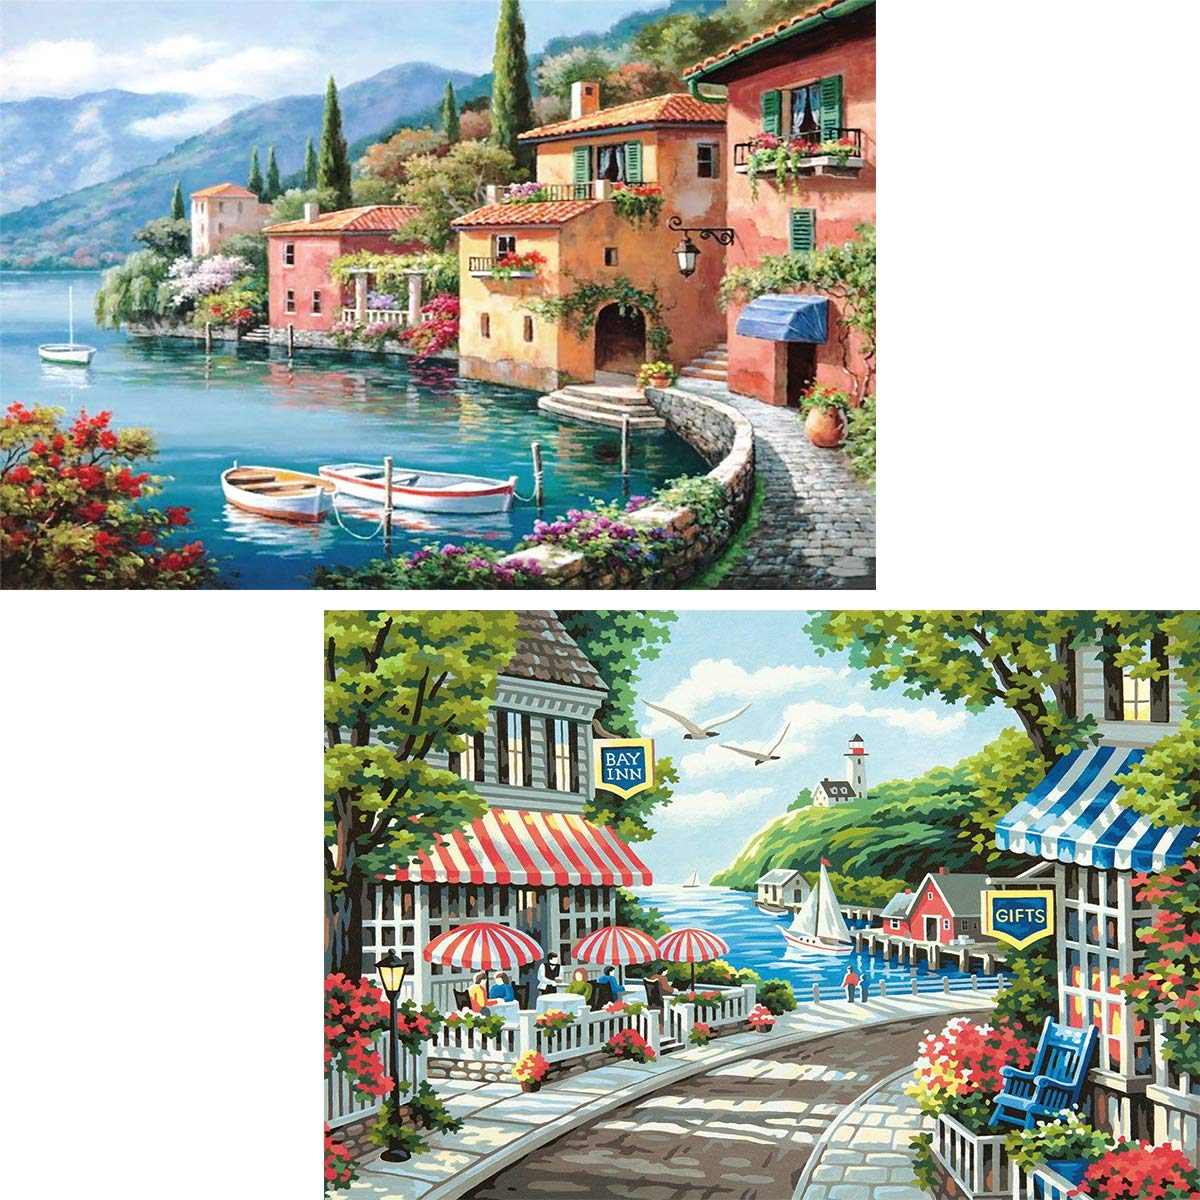 Ginfonr 5D DIY Diamond Painting Mediterranean Sea & European Landscape Full Drill by Number Kits, Scenery Paint with Diamonds Art Craft Embroidery Rhinestone Decor (12 x 16 inch)